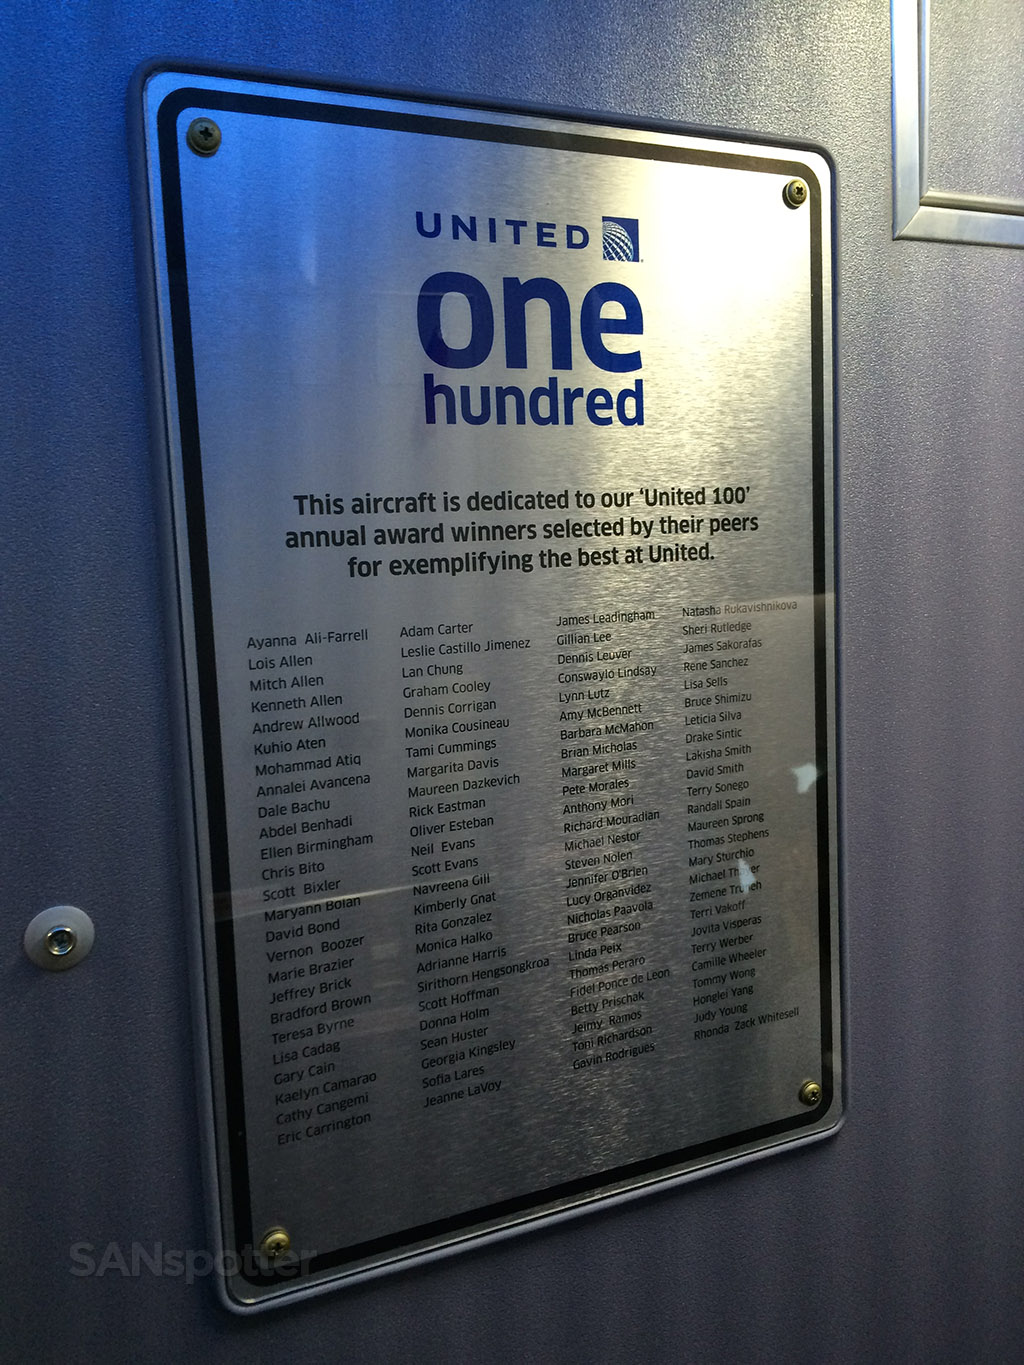 United Airlines One Hundred plaque